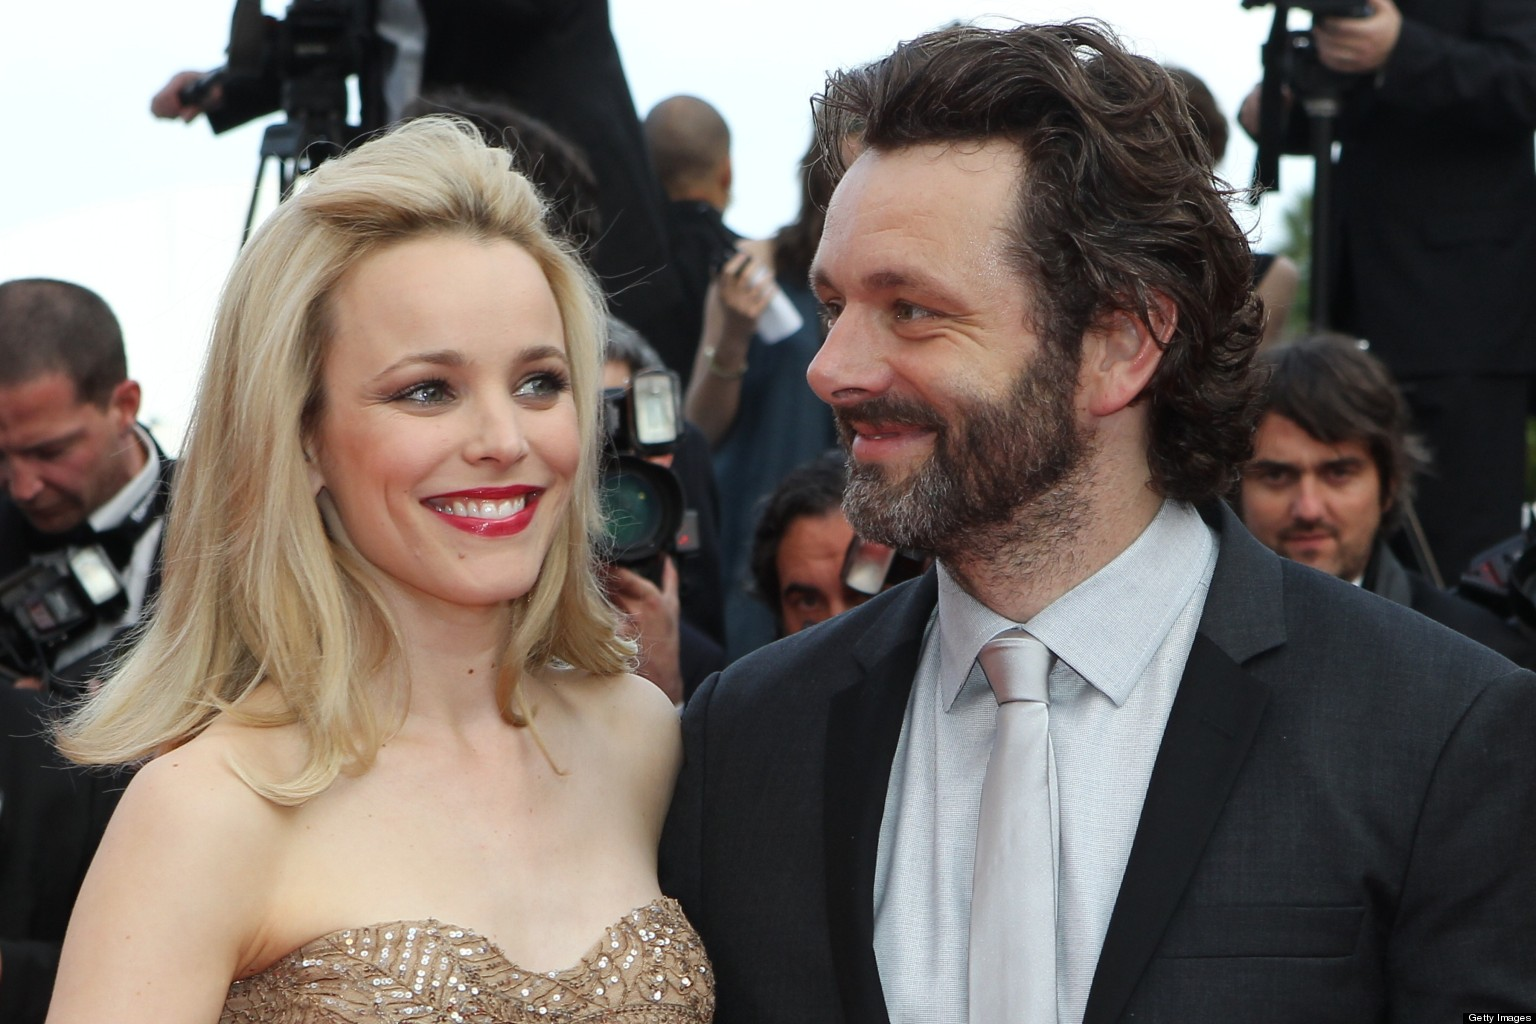 michael sheen dating now Kate beckinsale has been in relationships with matt rife (2017), michael sheen (1995 - 2003) and edmund moriarty (1992 - 1993) about kate beckinsale is a 44 year old british actress born kathryn romany beckinsale on 26th july, 1973 in chiswick, london, united kingdom, she is famous for pearl harbor, underworld and van helsing her.